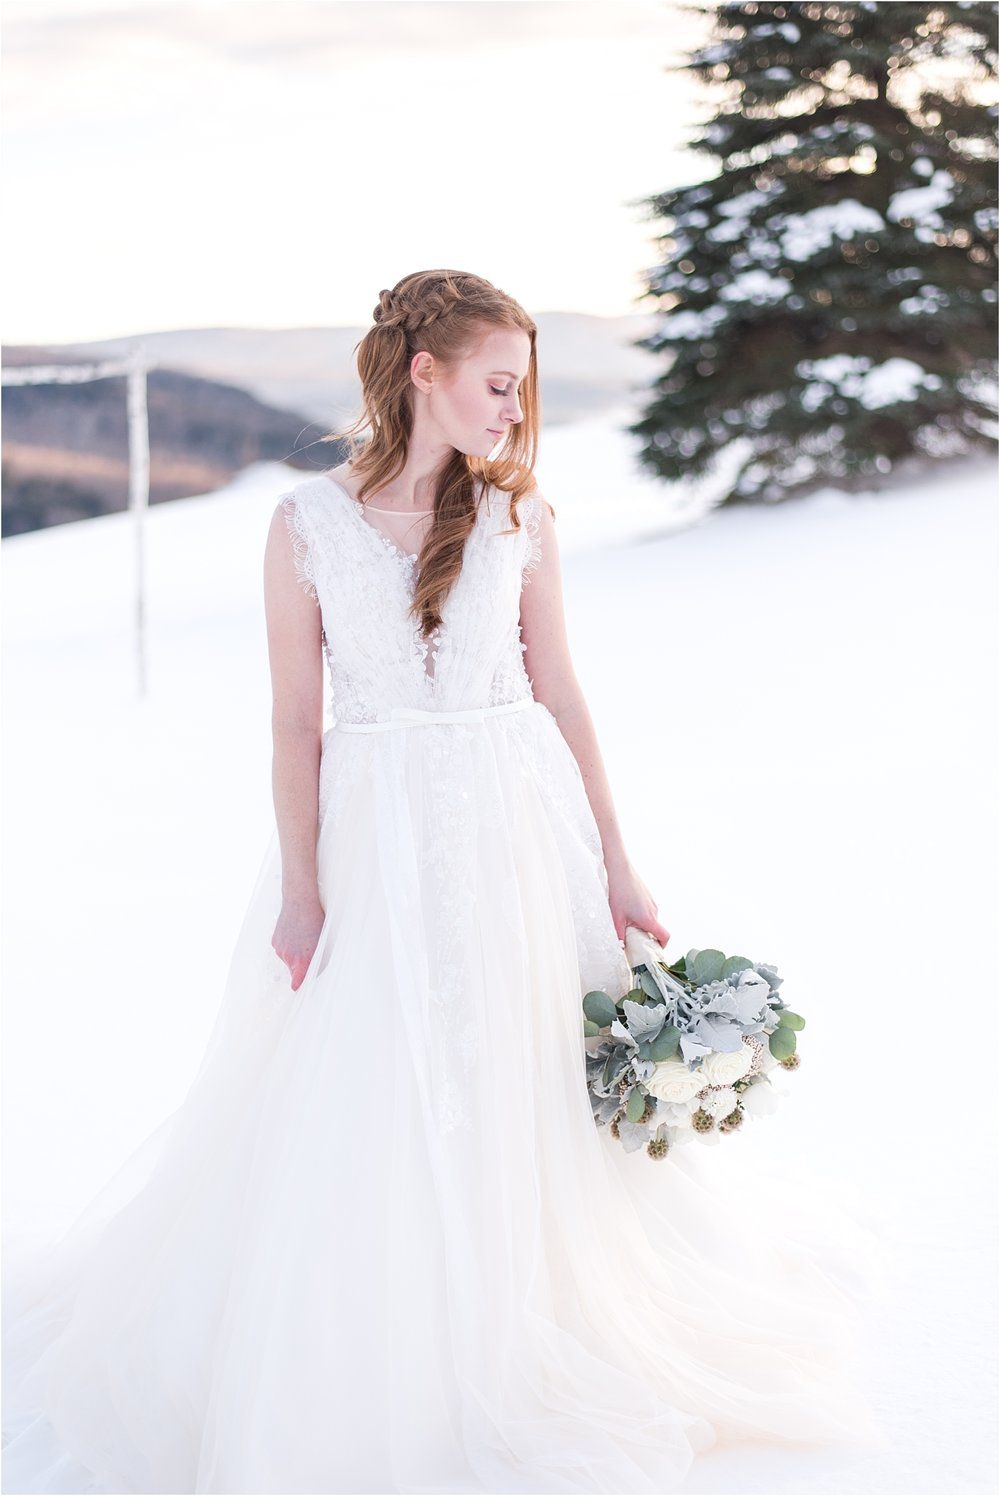 winter_bridal_inspiration_fabiana_skubic_wedding_photographer (50).jpg